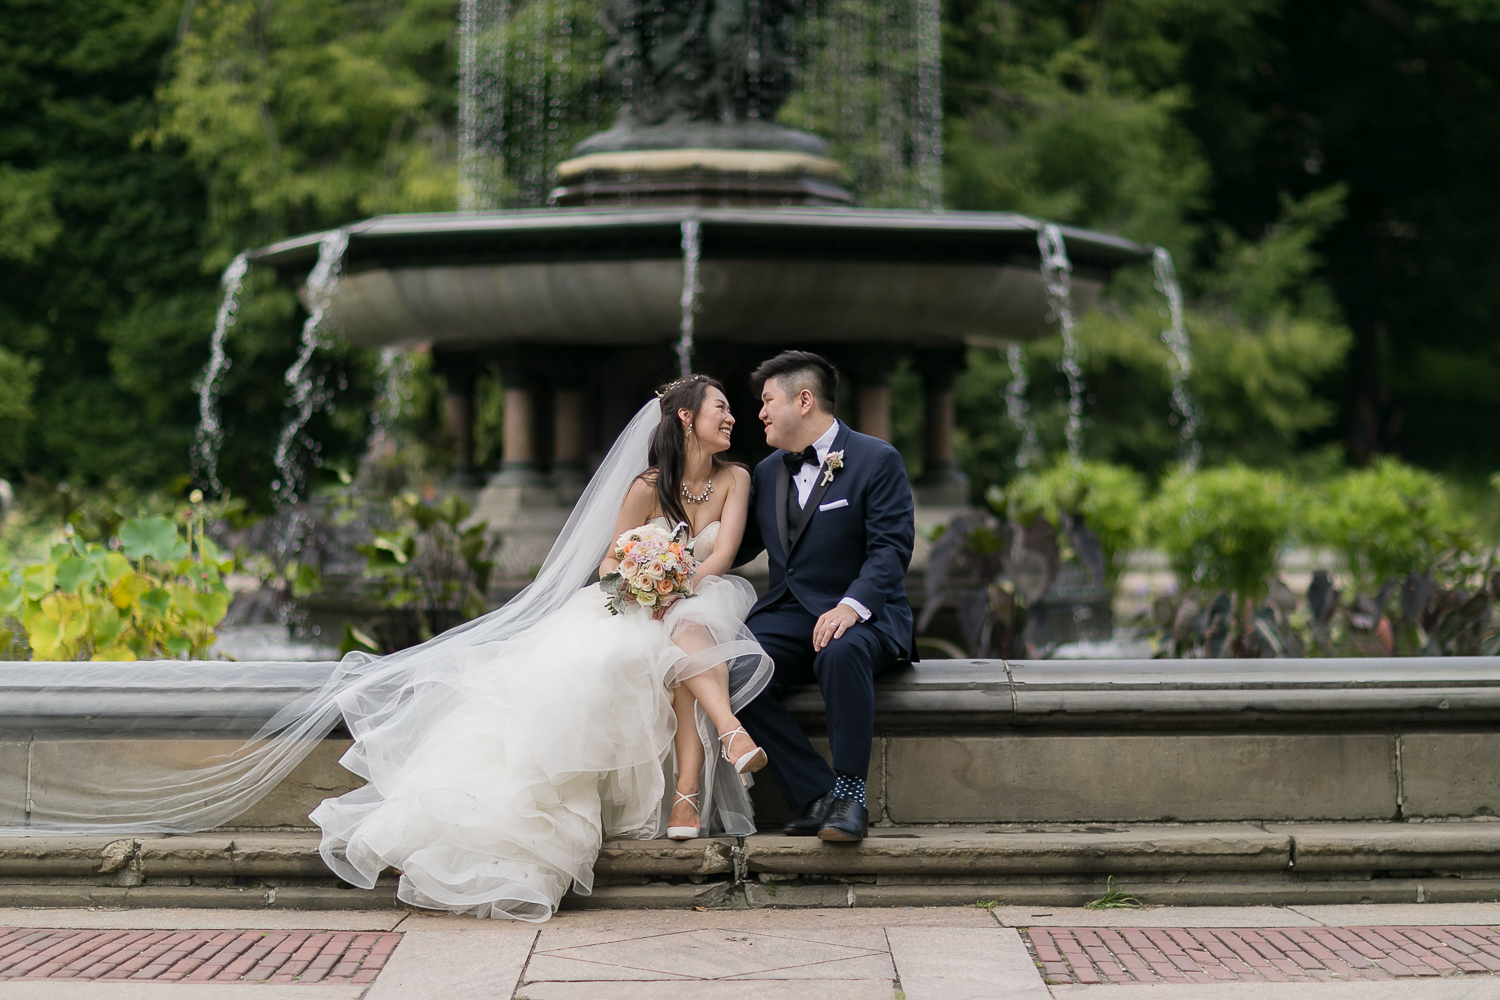 Portrait of a bride and groom after their wedding at Lincoln Center in New York City | Lincoln Center Wedding Photos | Jason and Susanna's Glam NYC Elopement